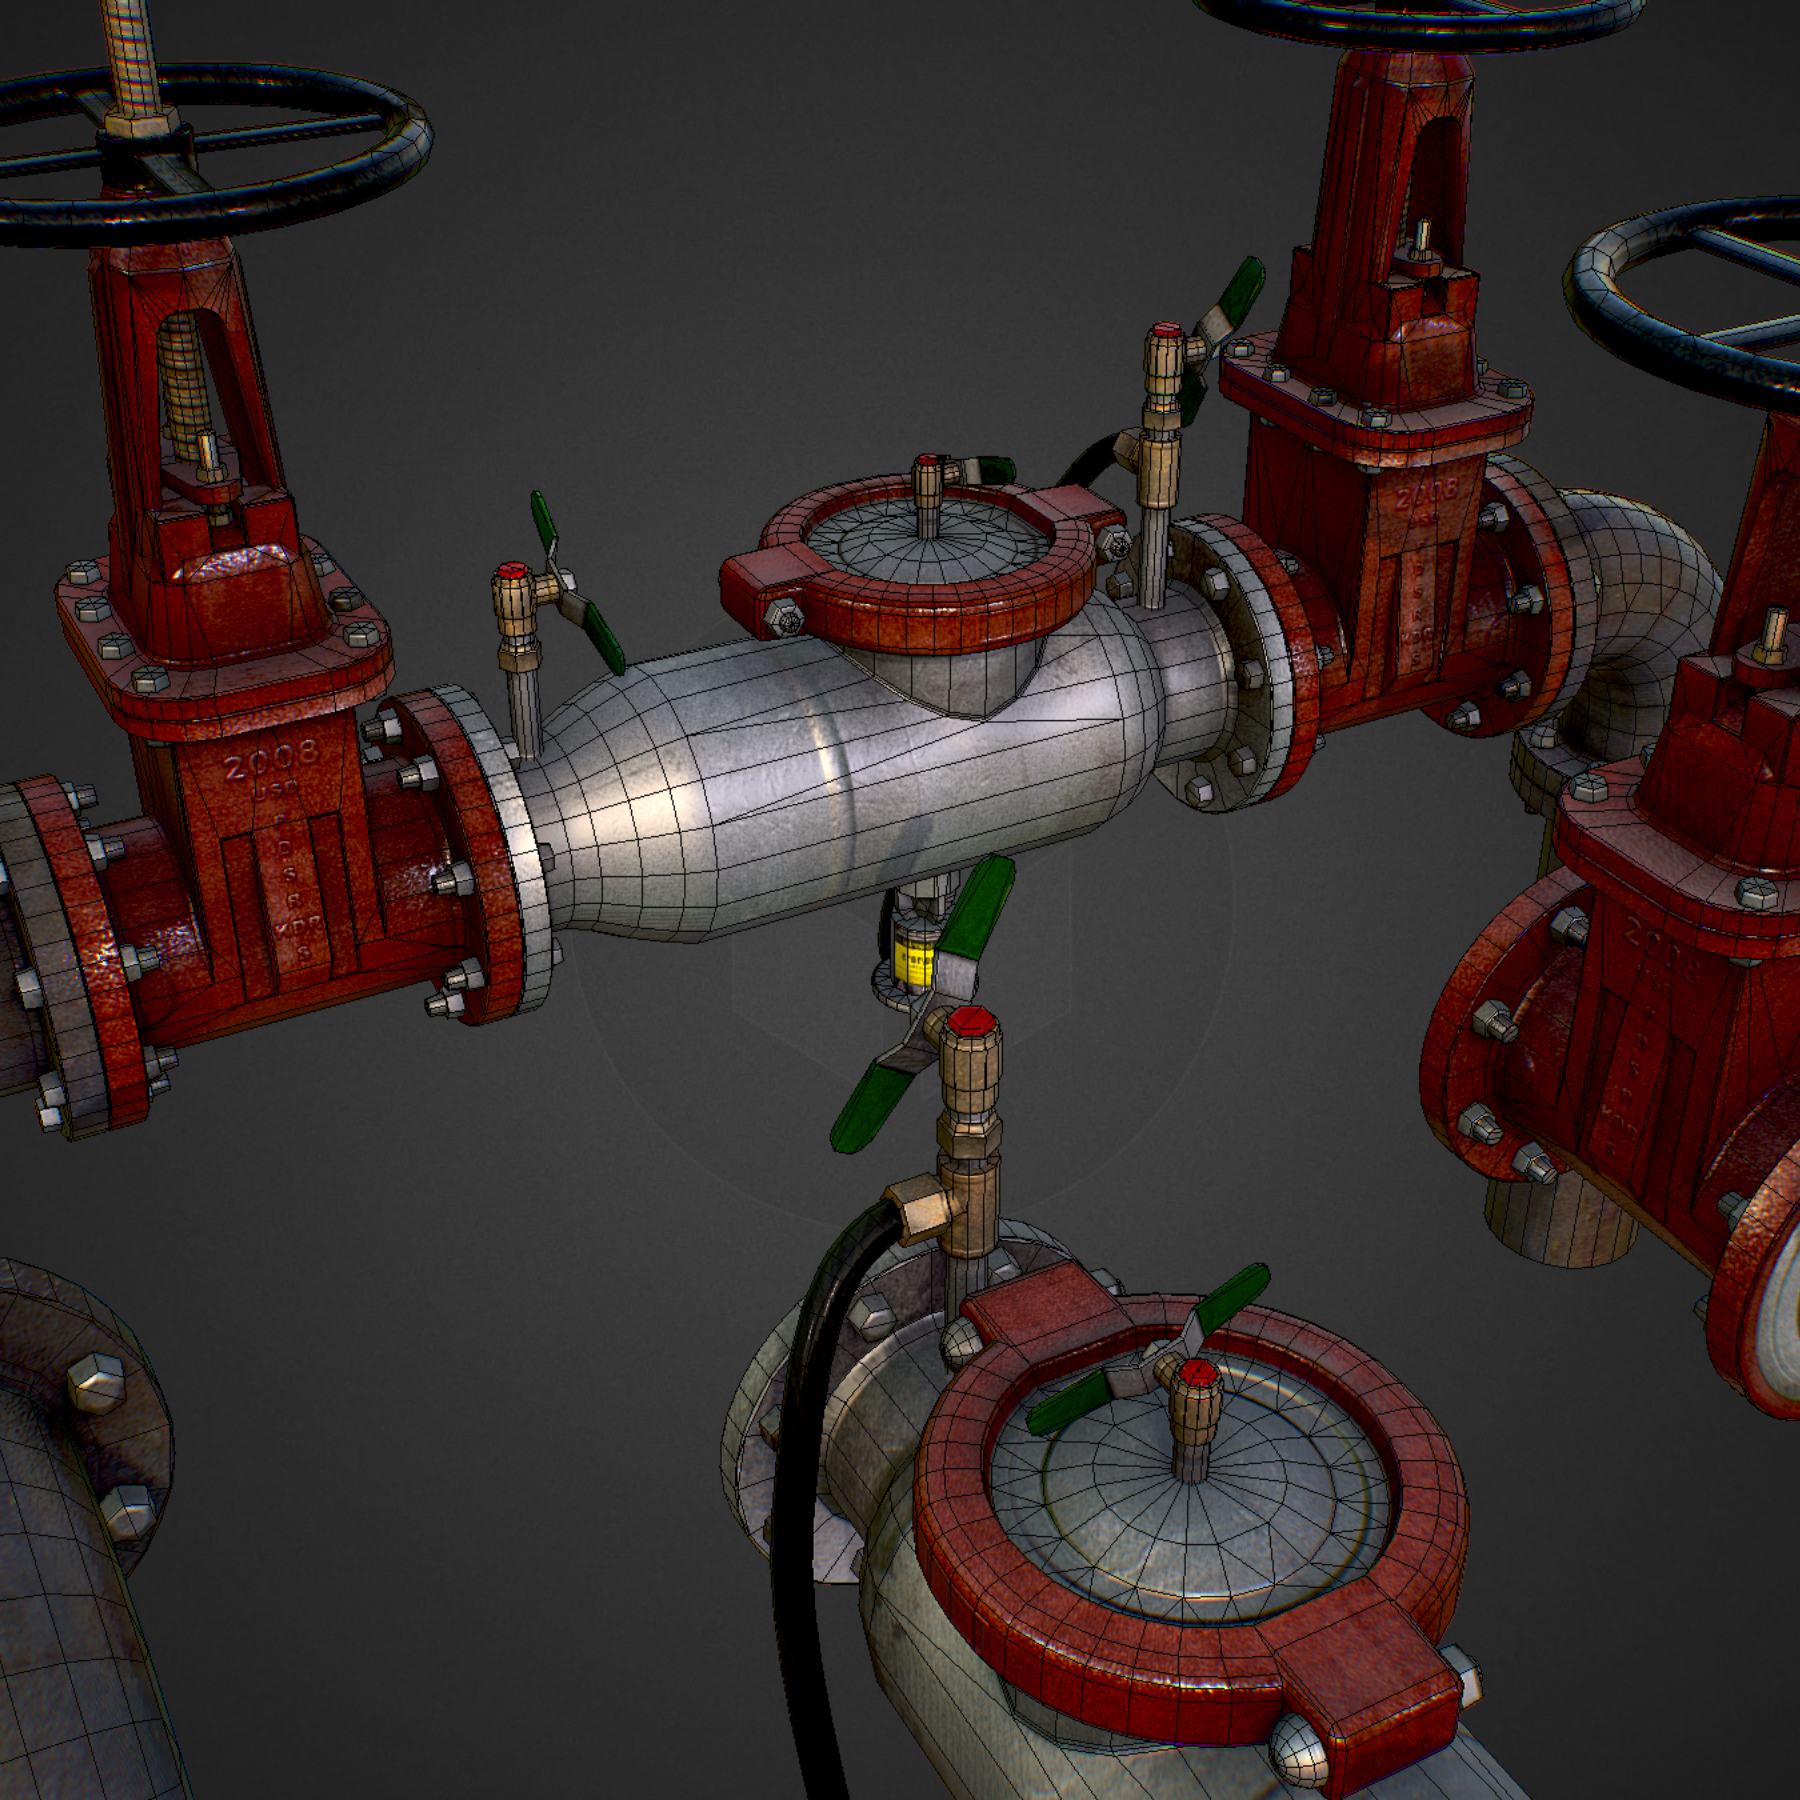 low poly game backflow water pipe constructor 3d model max  fbx ma mb tga targa icb vda vst pix obj 272489